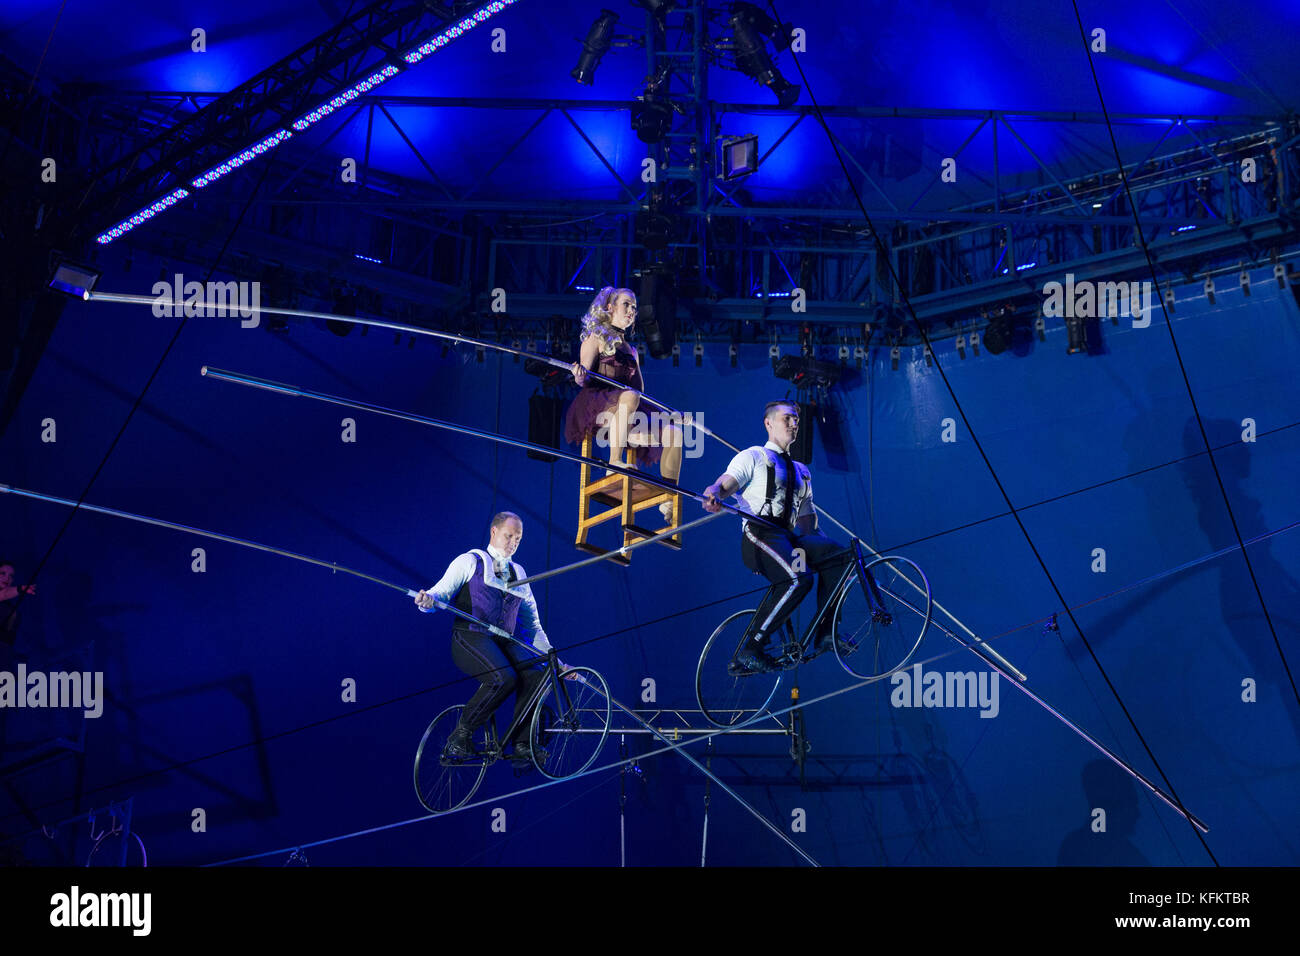 New York, USA. 29th Oct, 2017. New York, NY - October 29, 2017: Nik Wallenda high wire performs at Big Apple Circus - Stock Image